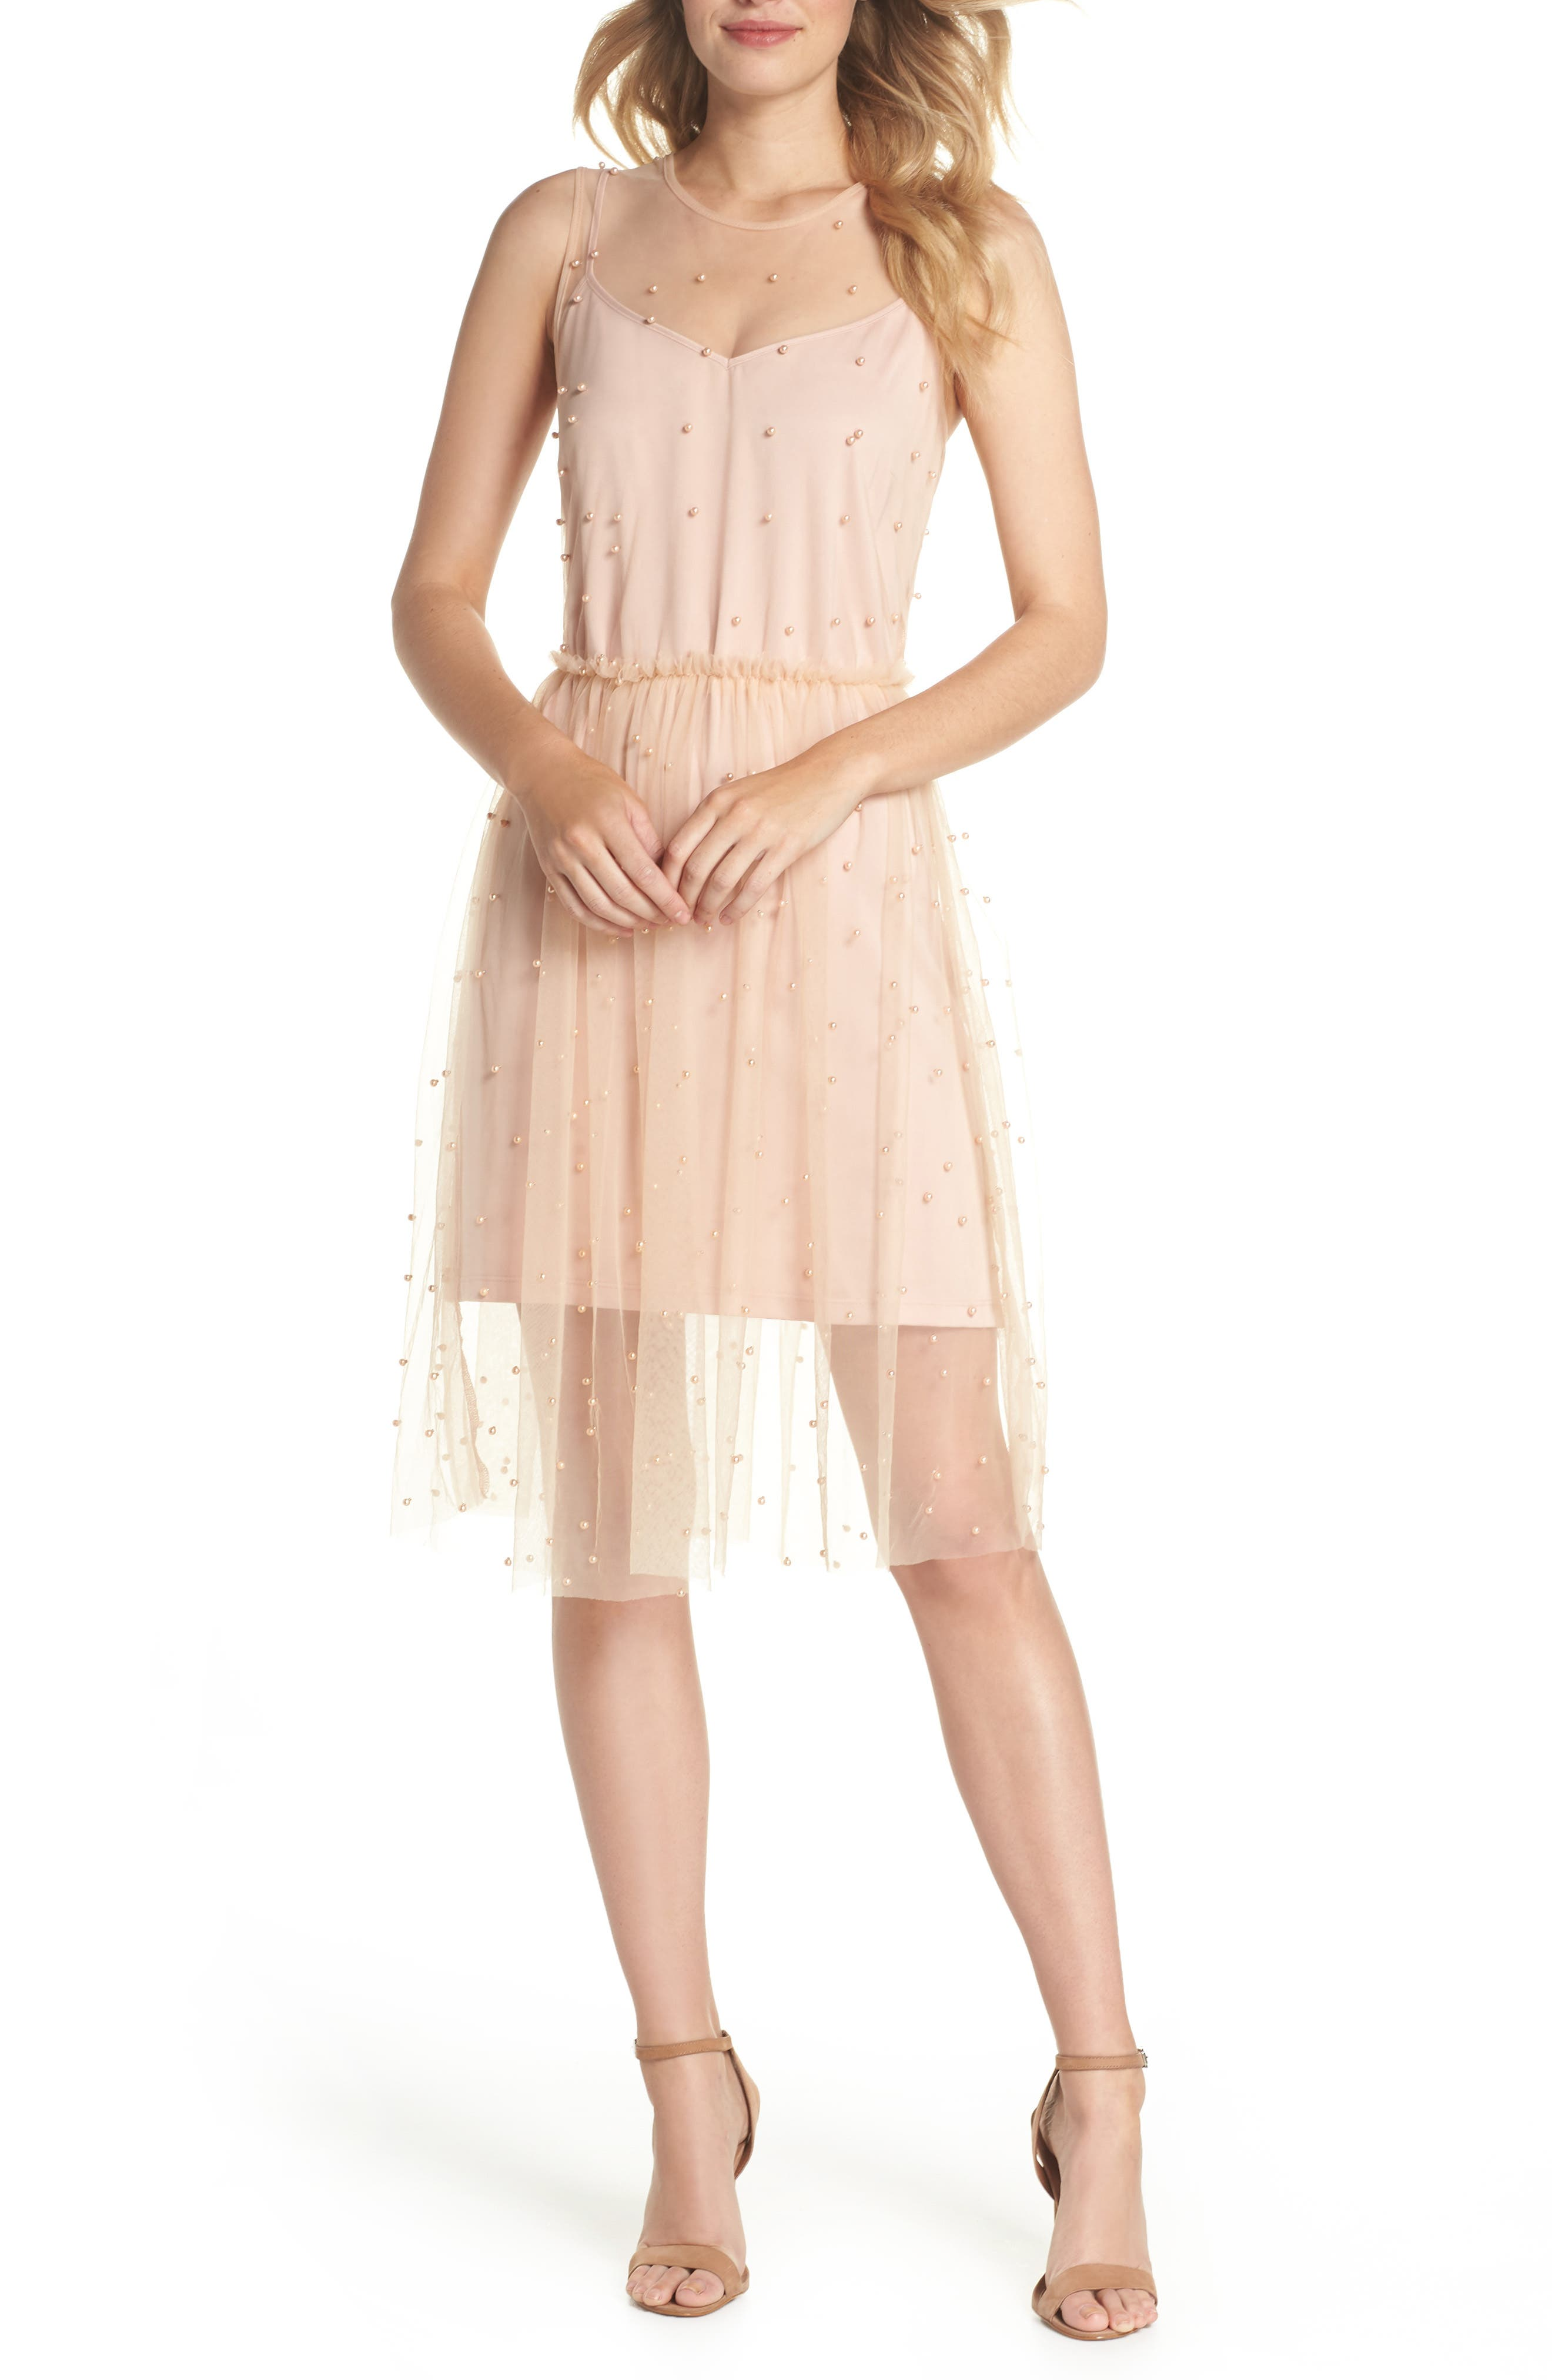 FOREST LILY Imitation Pearl & Tulle Dress, Main, color, 680